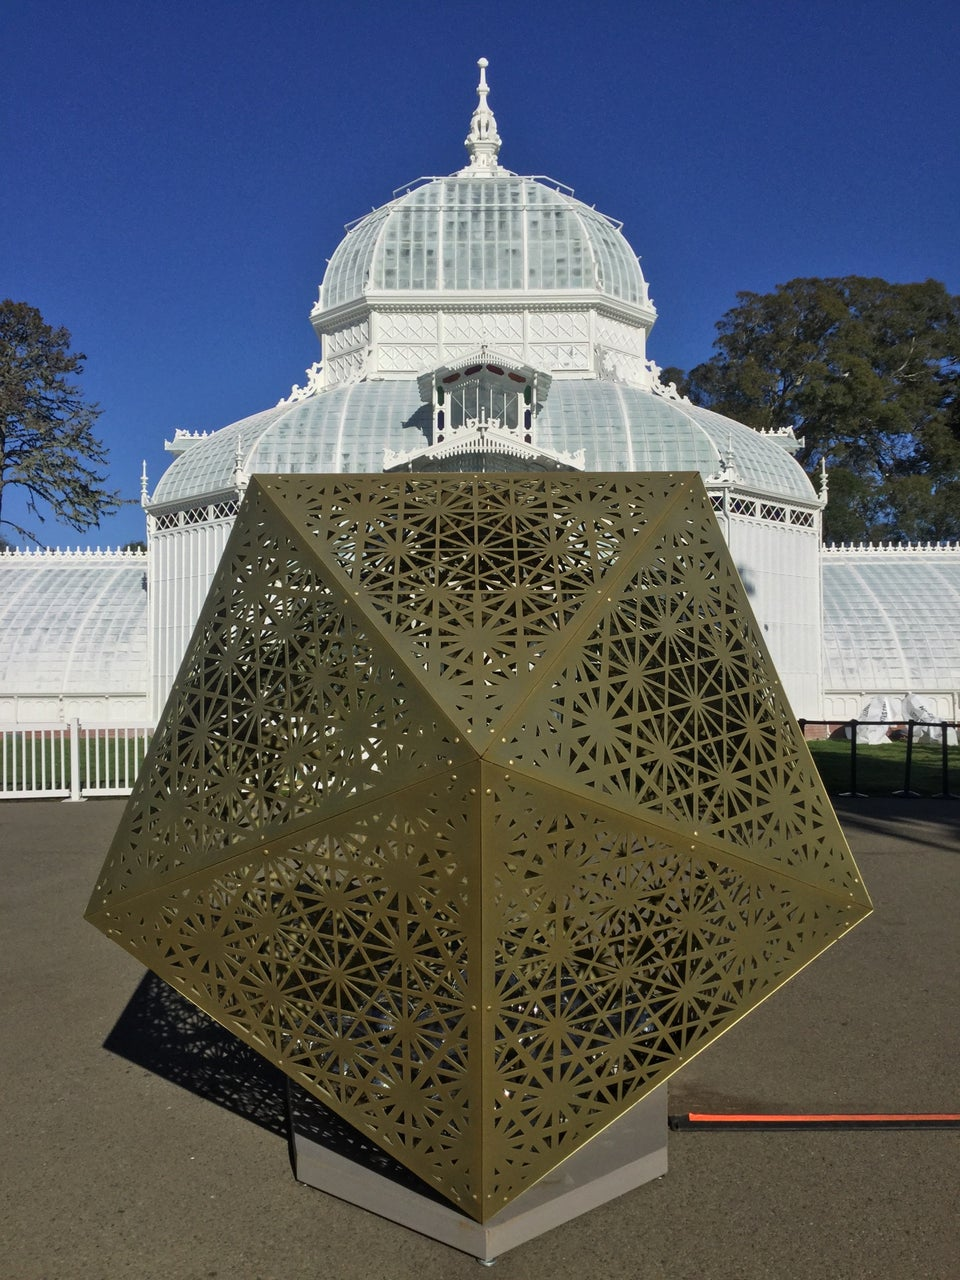 Artistic bronze colored large metal icosahedron with hexagonal patterns cut into its faces in front of the Conservatory of Flowers building.